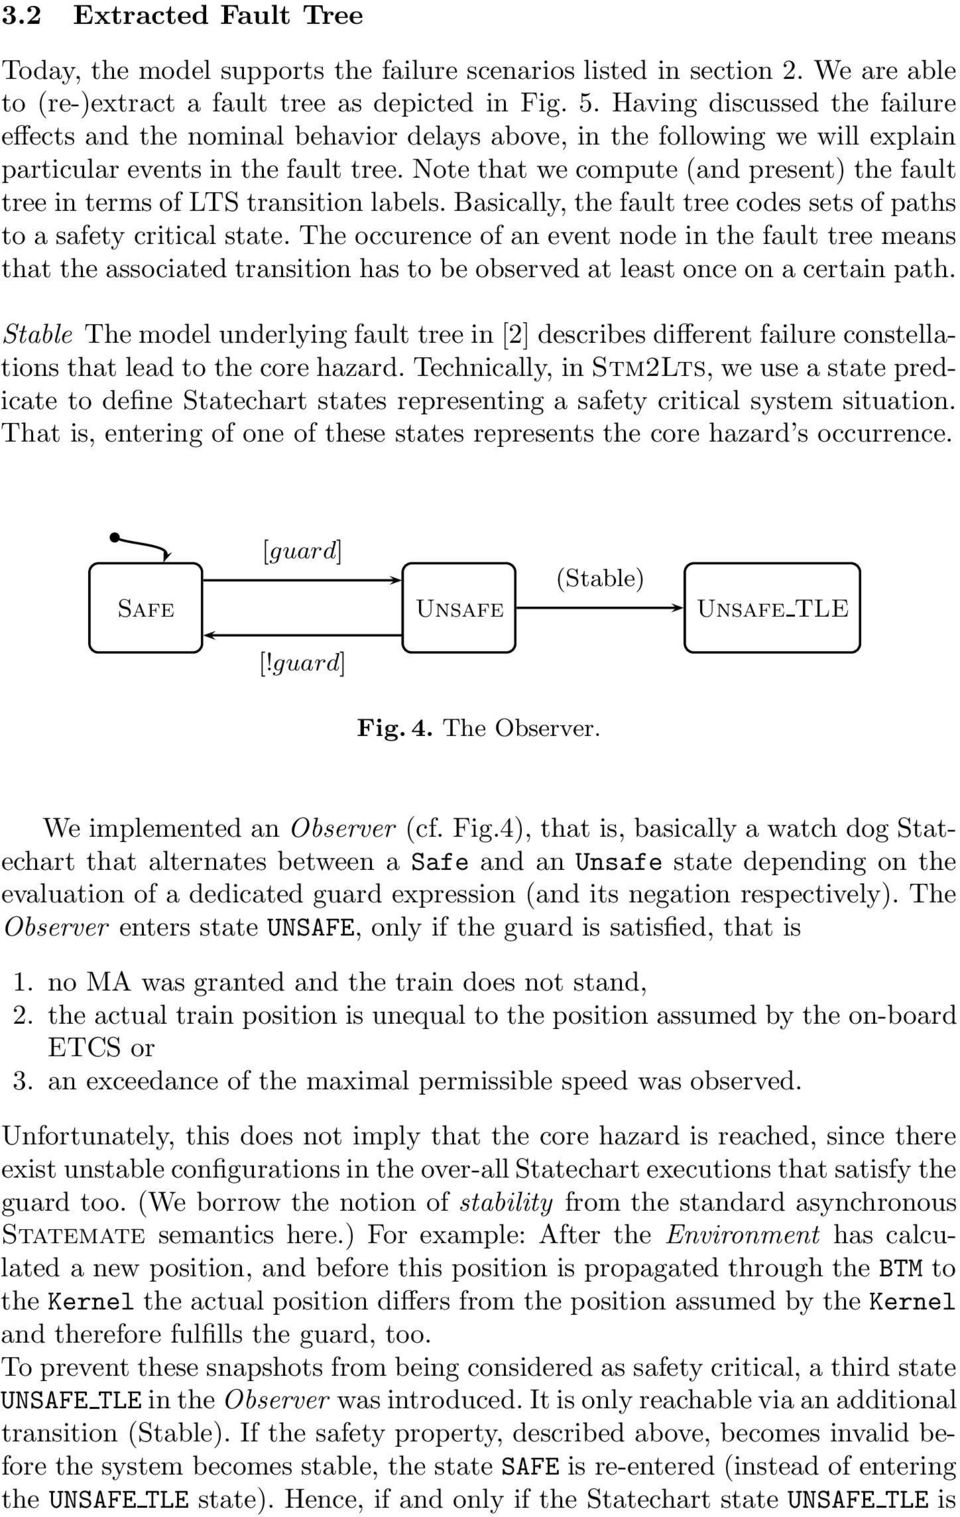 Note that we compute (and present) the fault tree in terms of LTS transition labels. Basically, the fault tree codes sets of paths to a safety critical state.